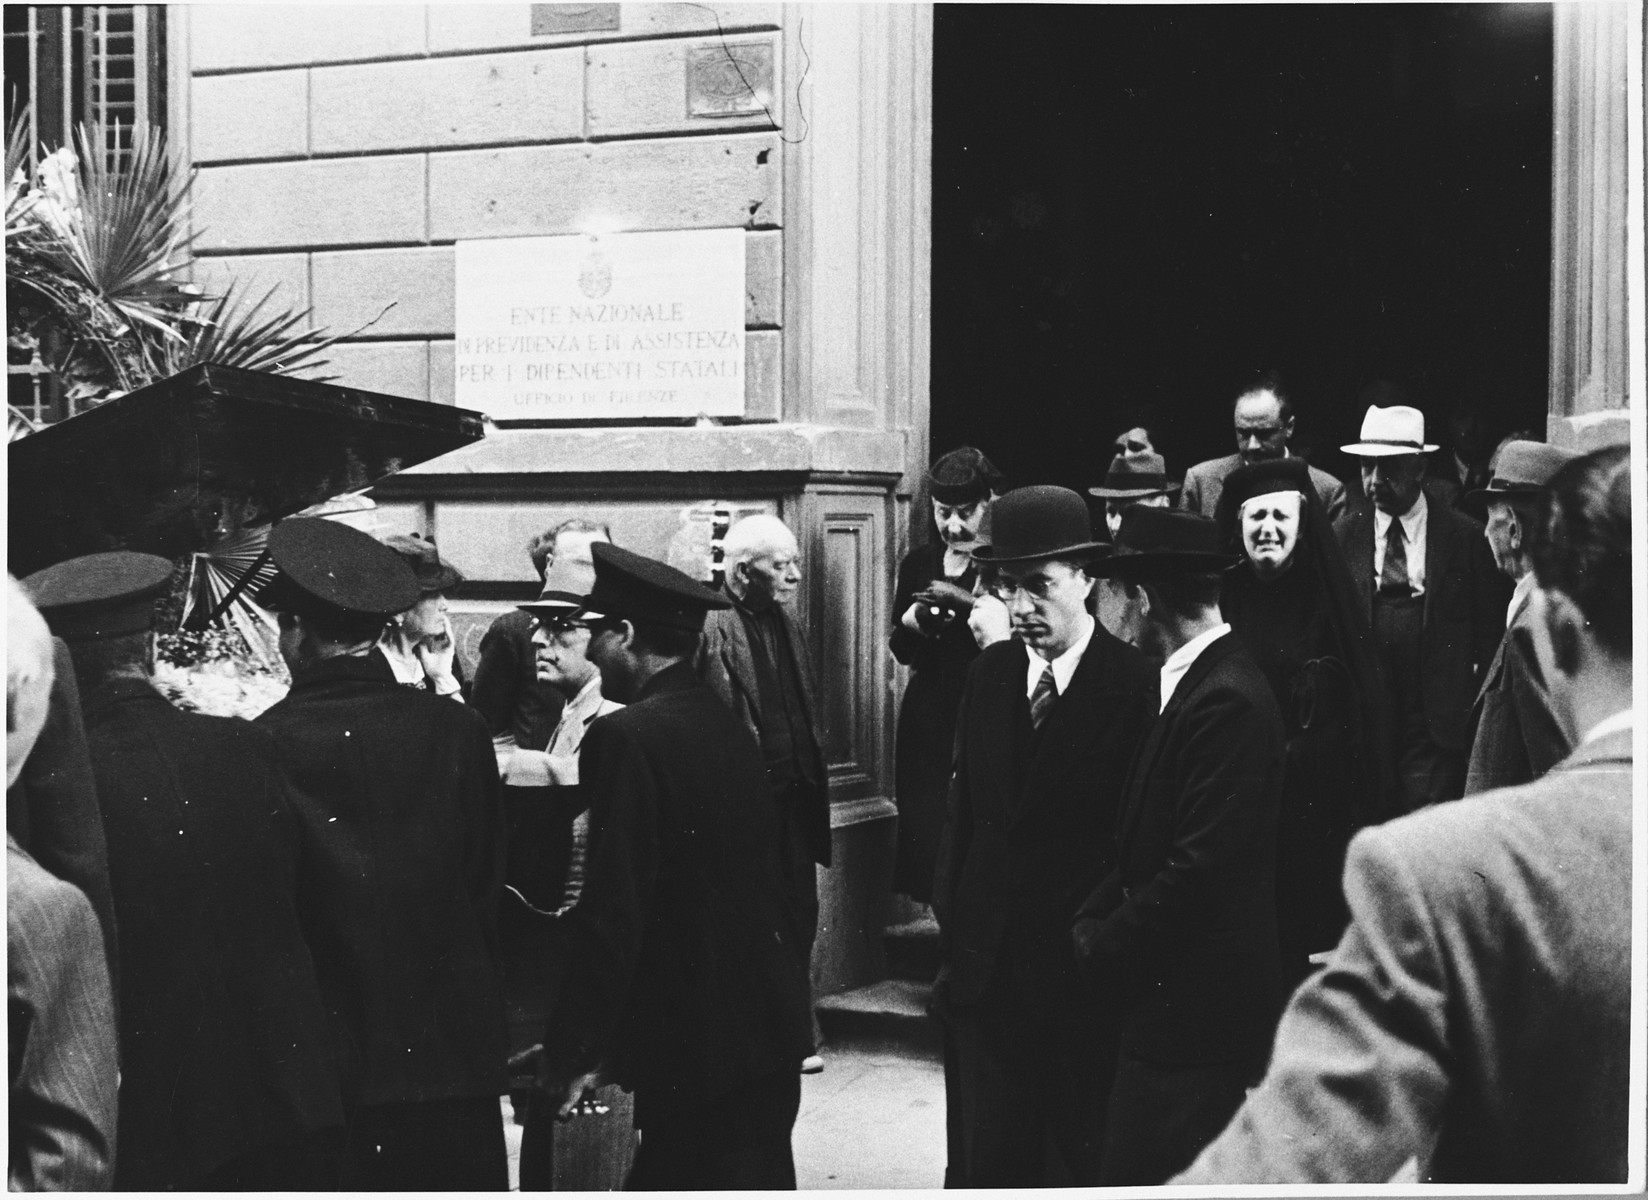 Rabbi Nathan Cassuto officiates at a funeral in Florence.